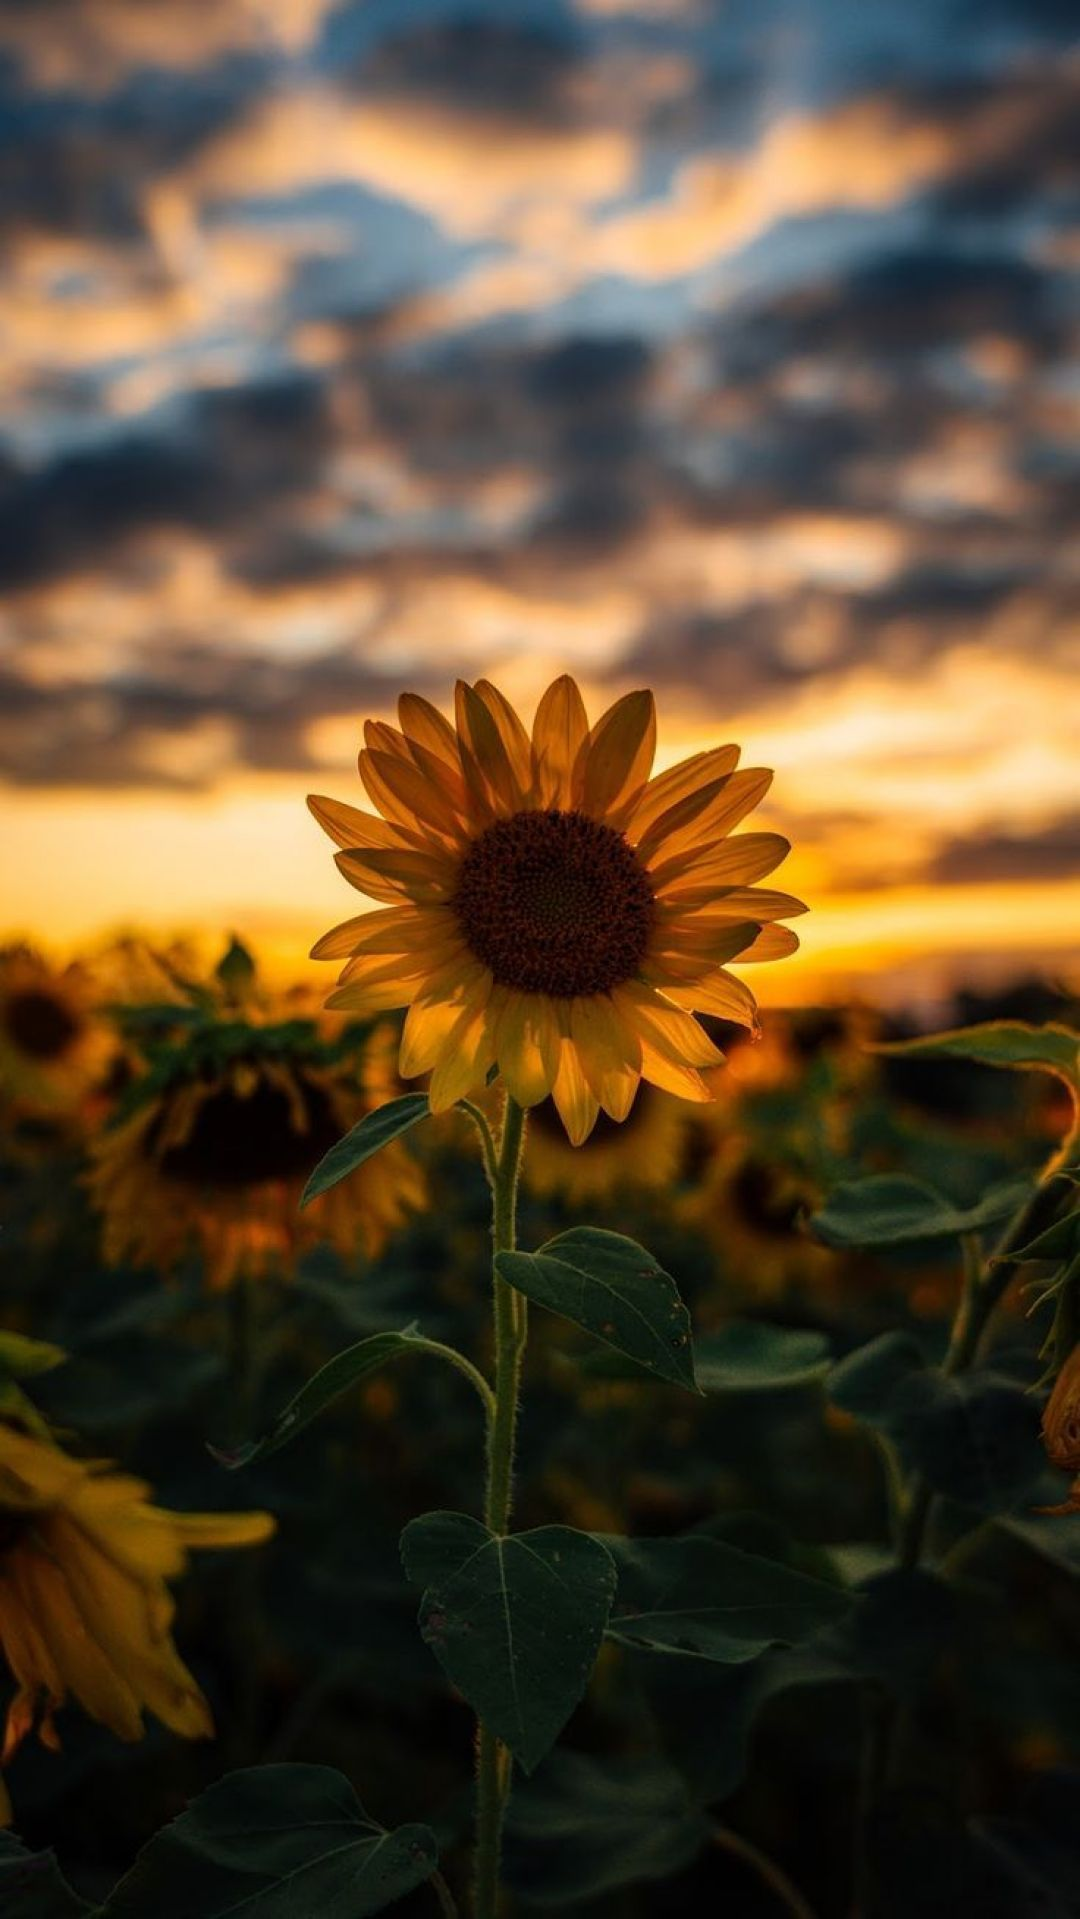 Aesthetic Hd Iphone Wallpapers Flowers in 2020 Sunflower iphone 1080x1919